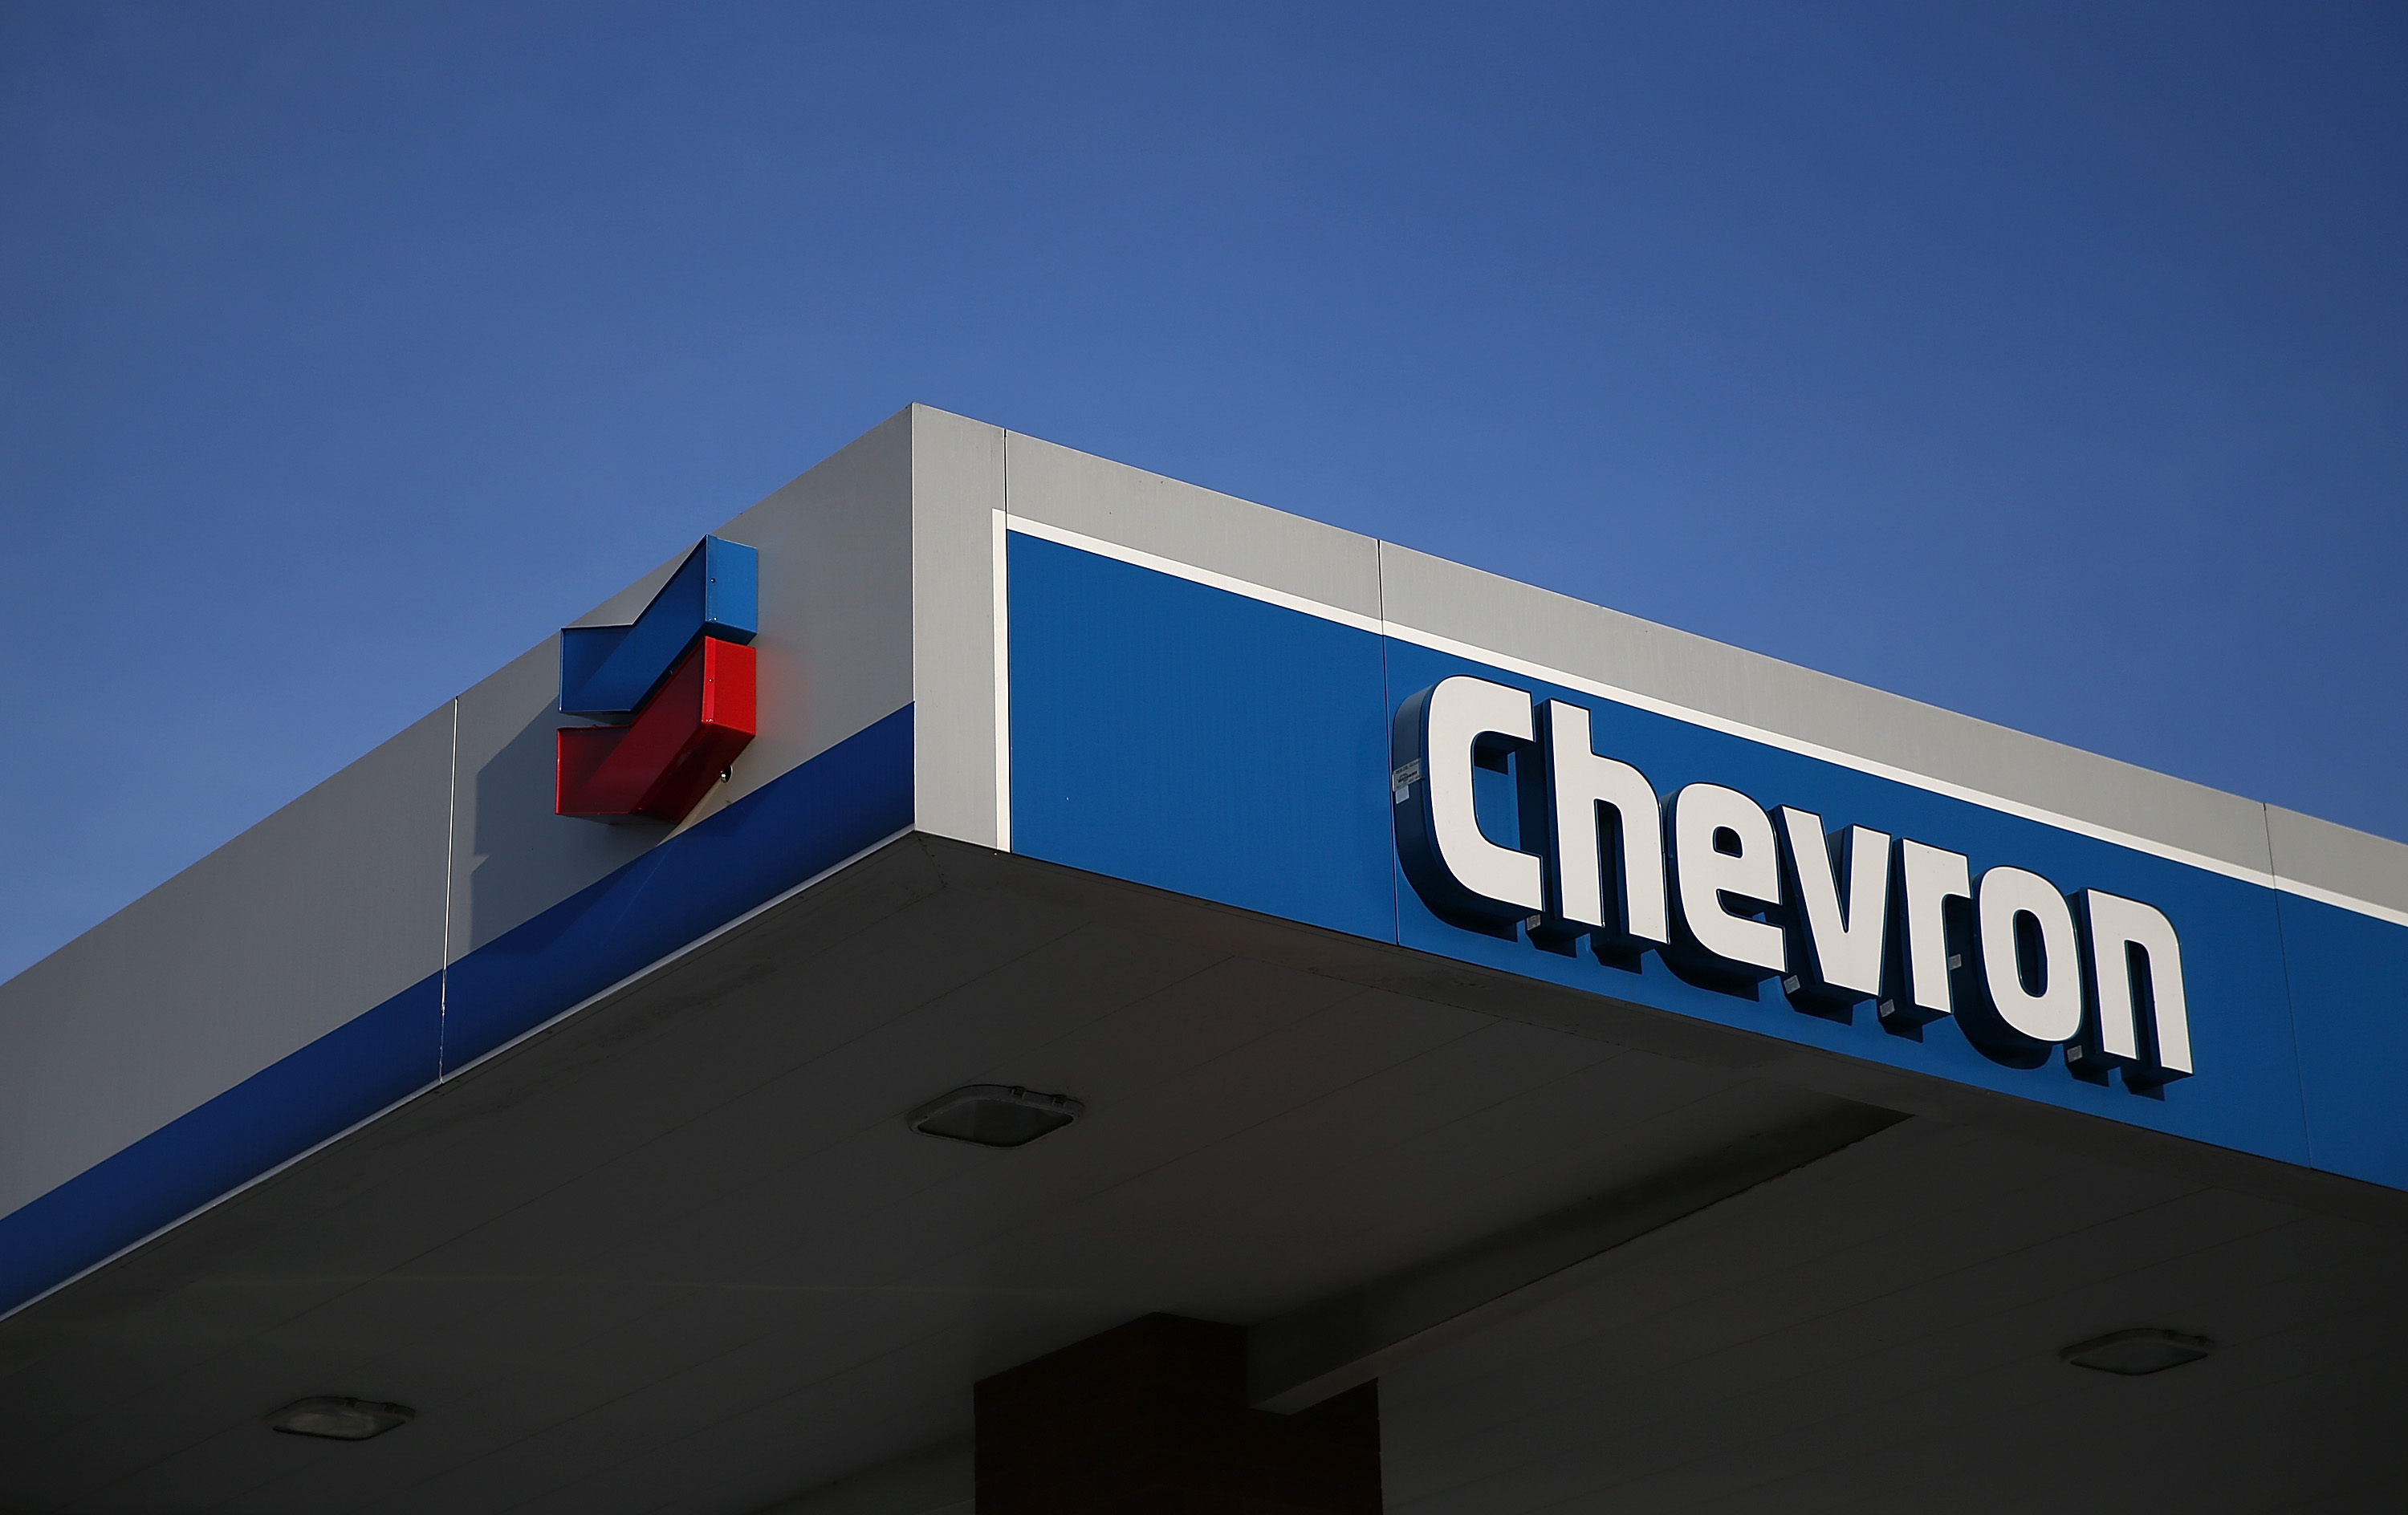 The Chevron logo is displayed at a Chevron gas station on May 2, 2014 in Greenbrae, California.